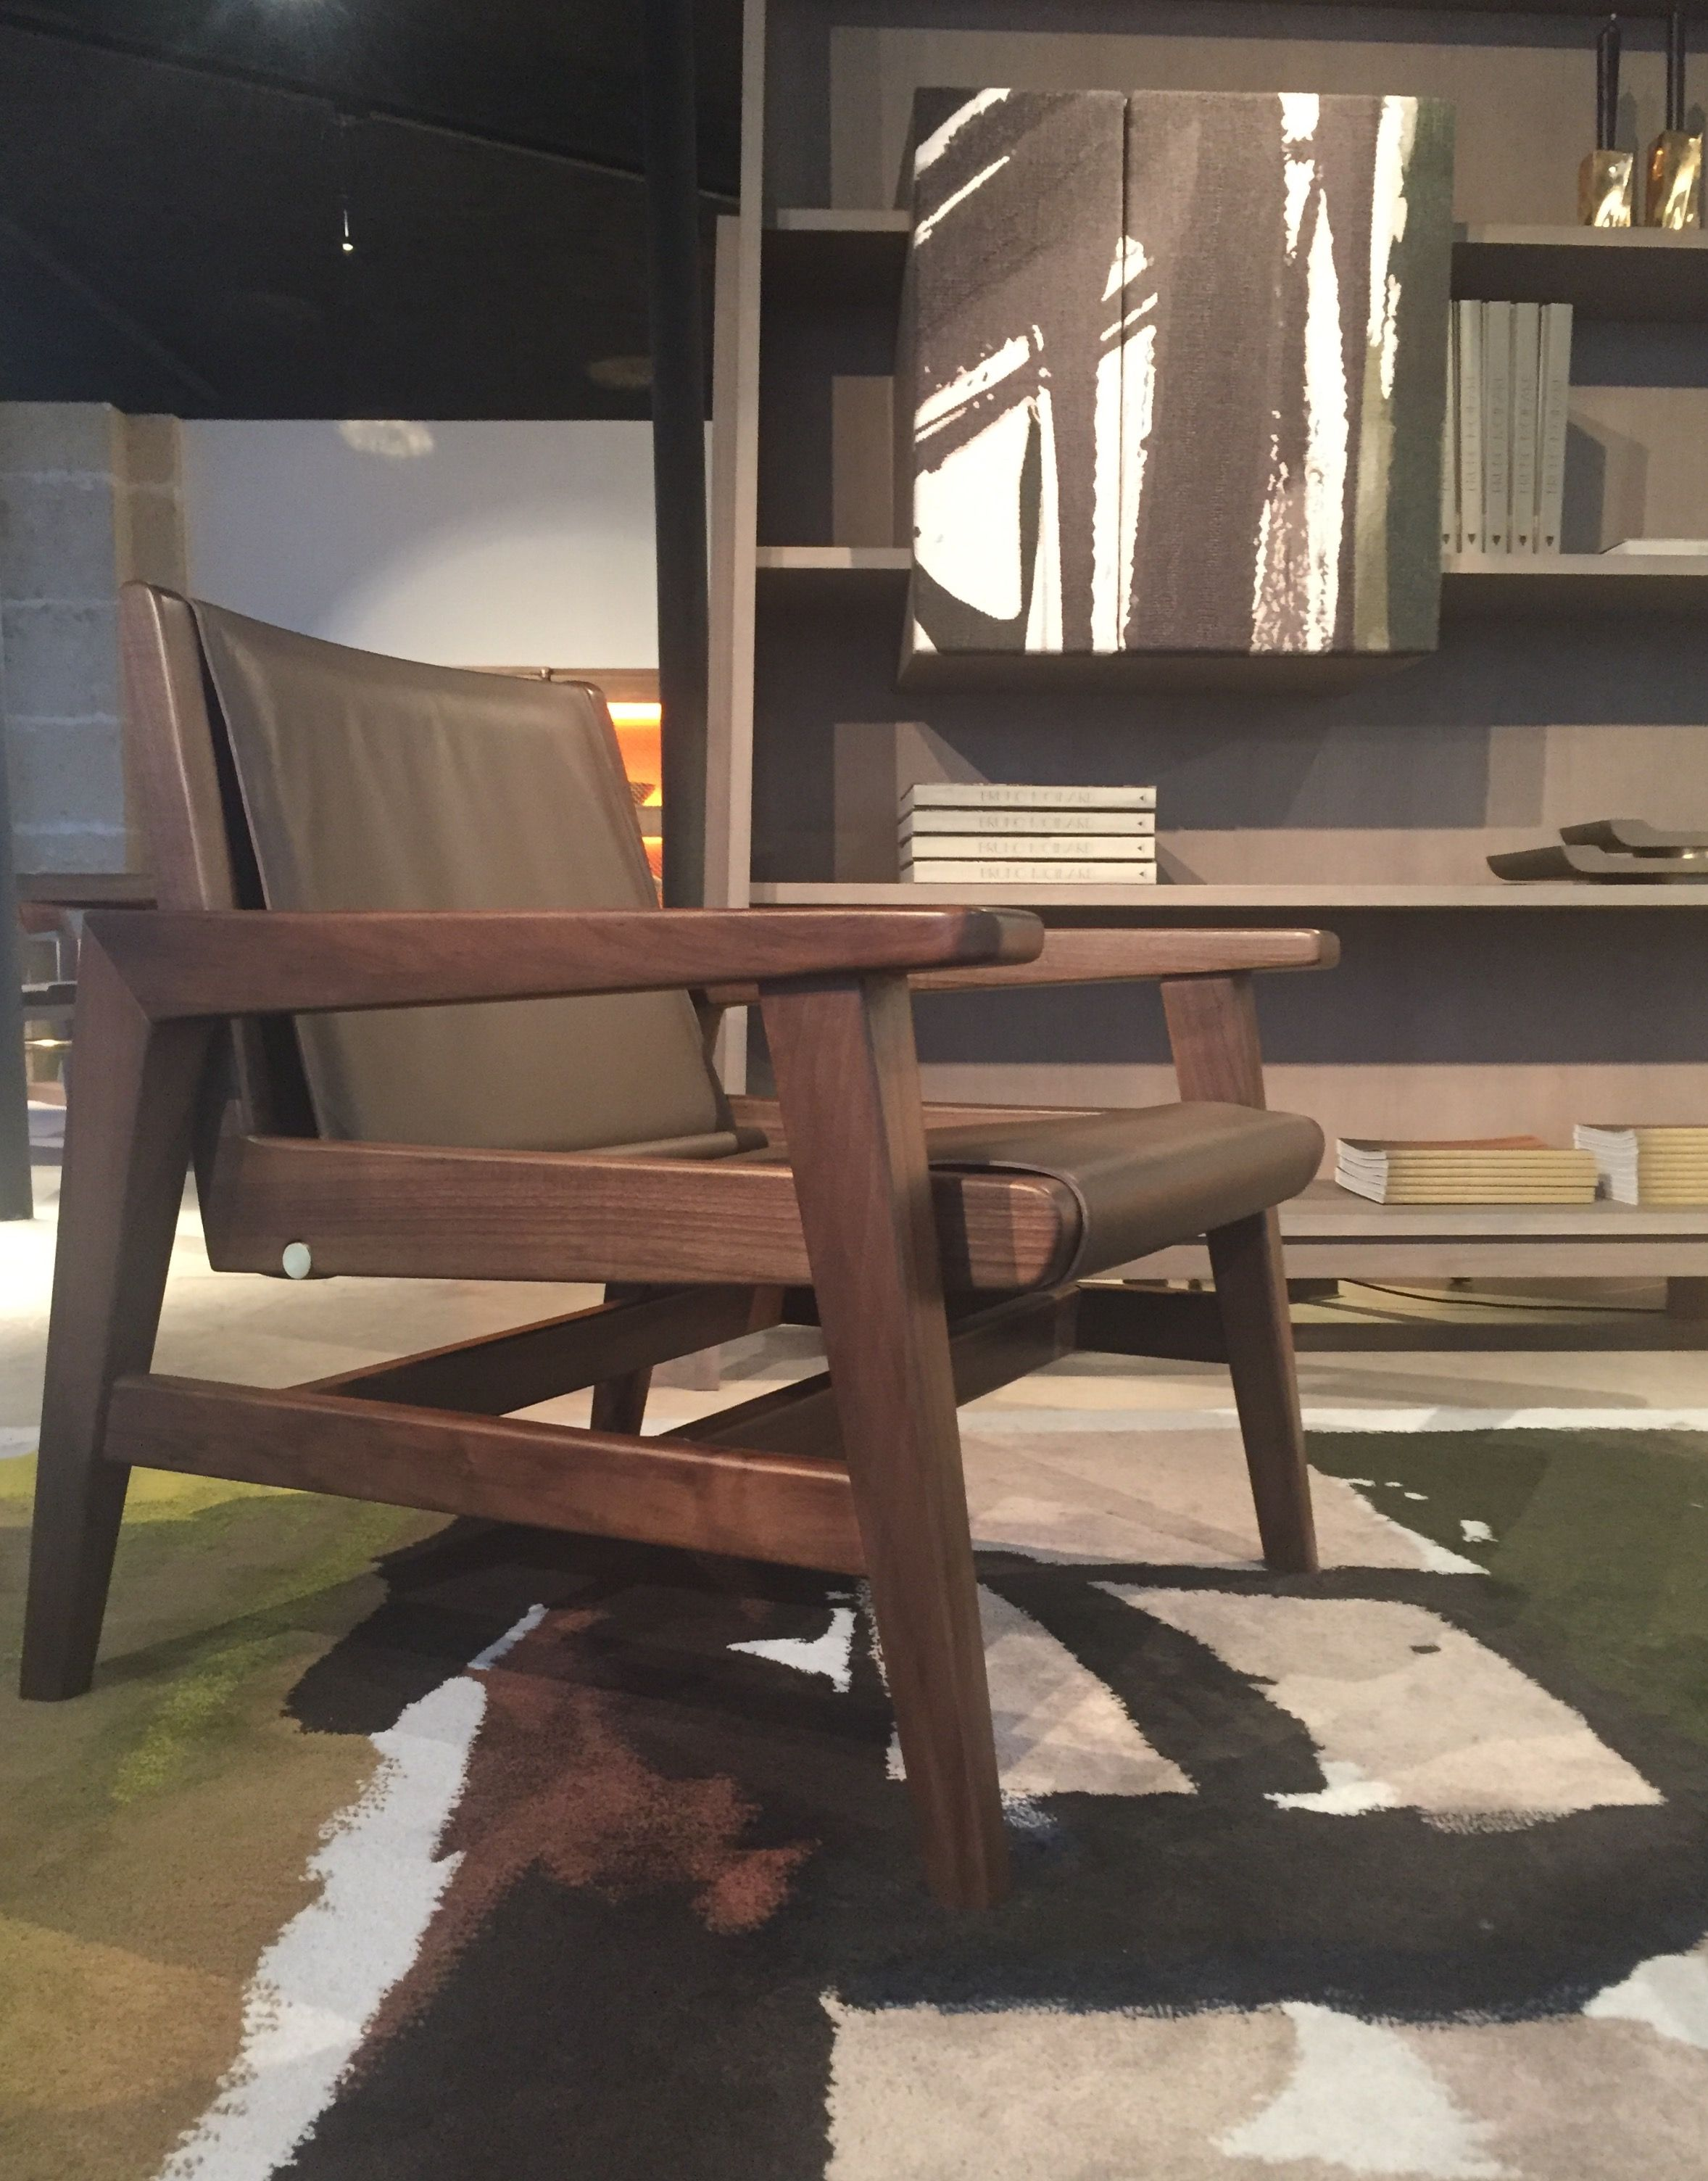 Harkavy furniture focuses on modern pieces made of wood and steel -  Armchair Colpo